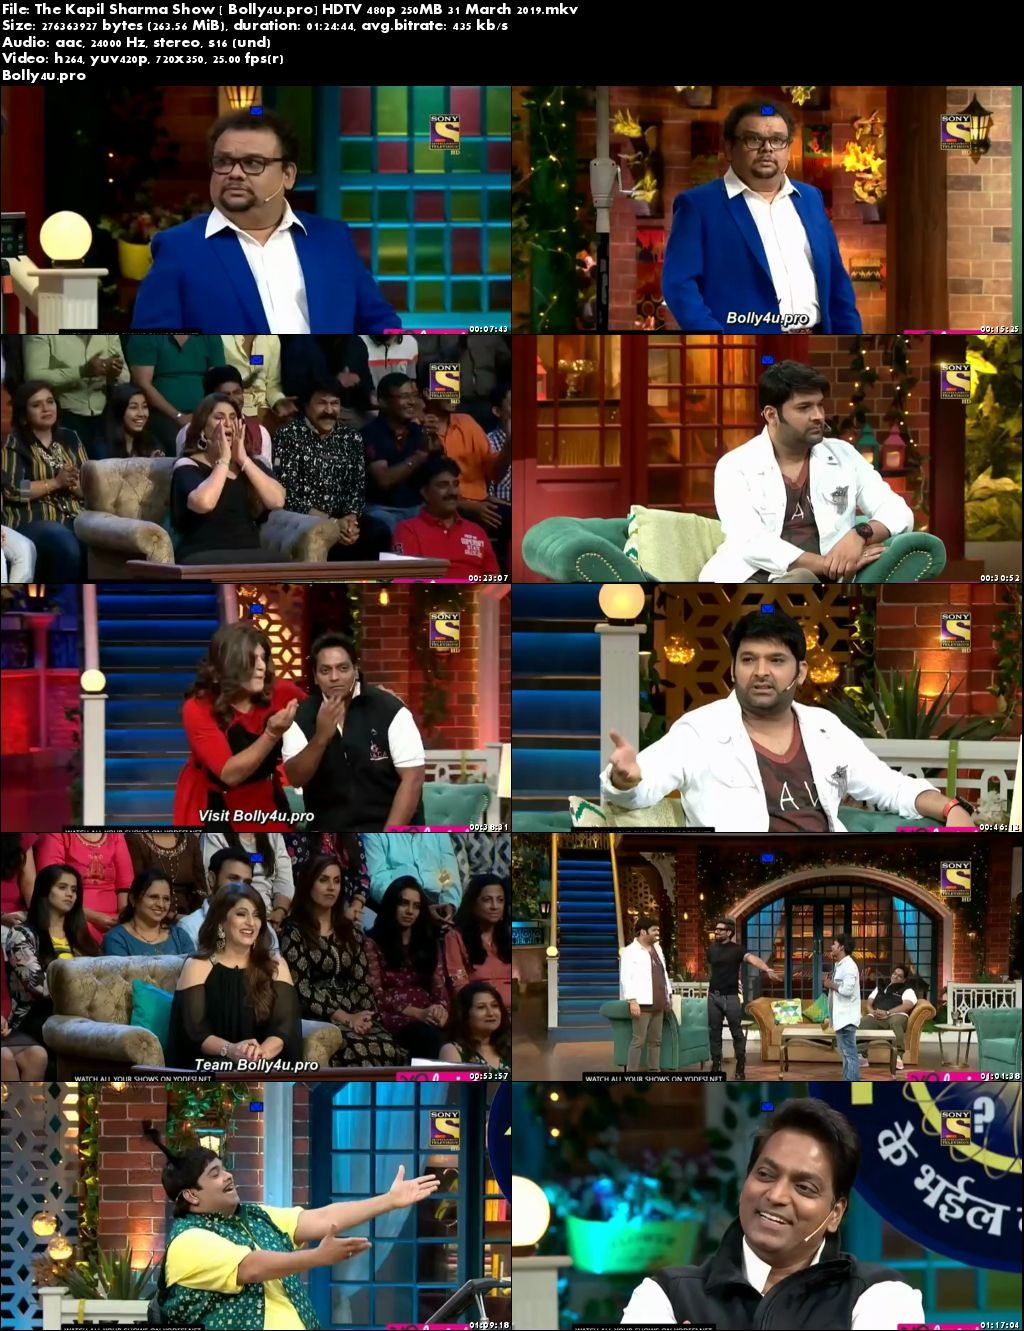 The Kapil Sharma Show HDTV 480p 250MB 31 March 2019 Download